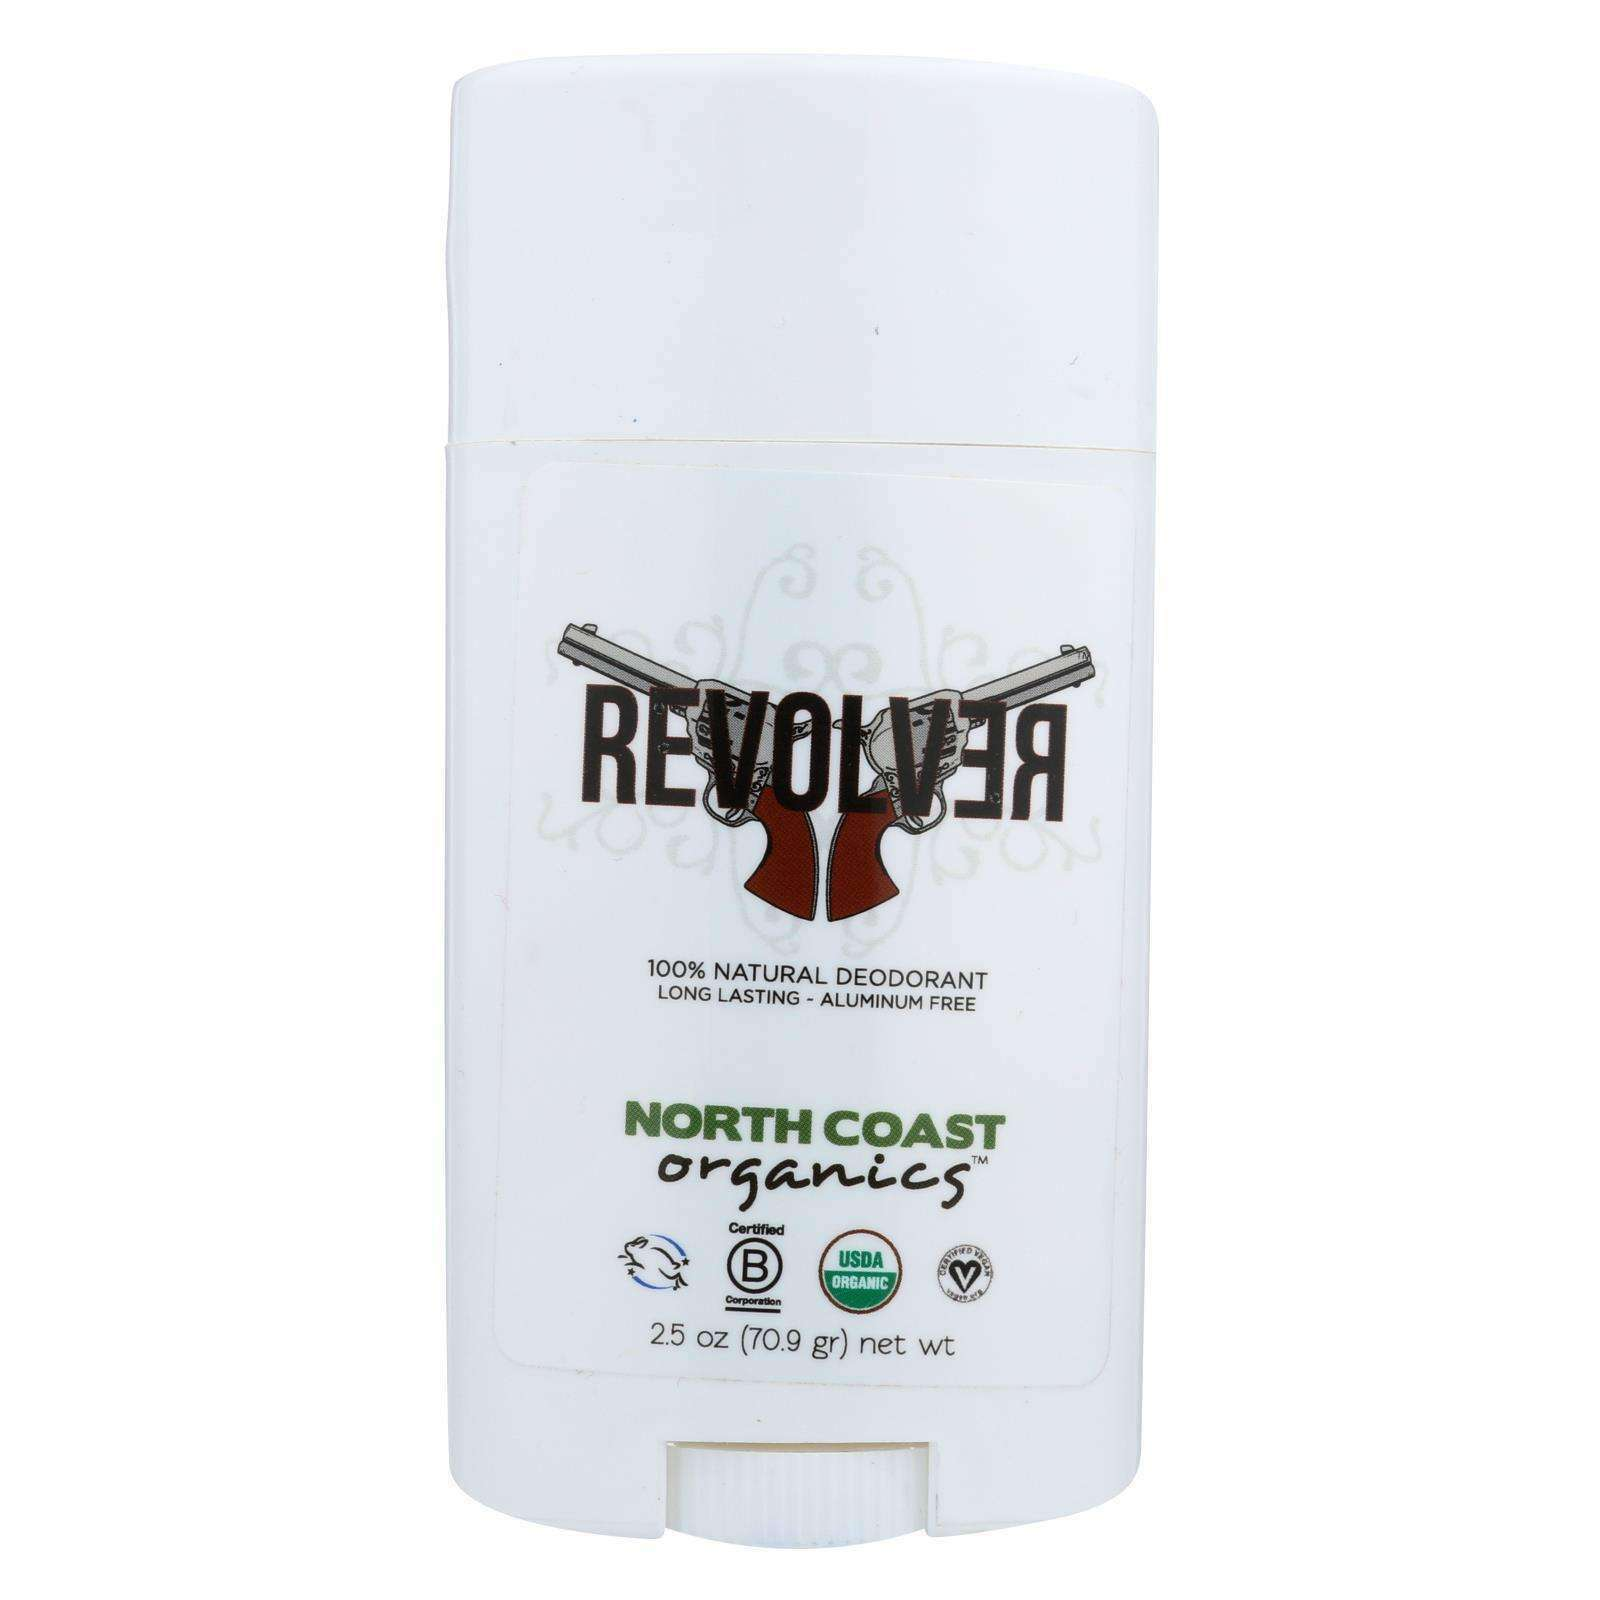 North Coast Organics Deodorant - Revolver - 1 Each - 2.5 Oz. - BeeGreen